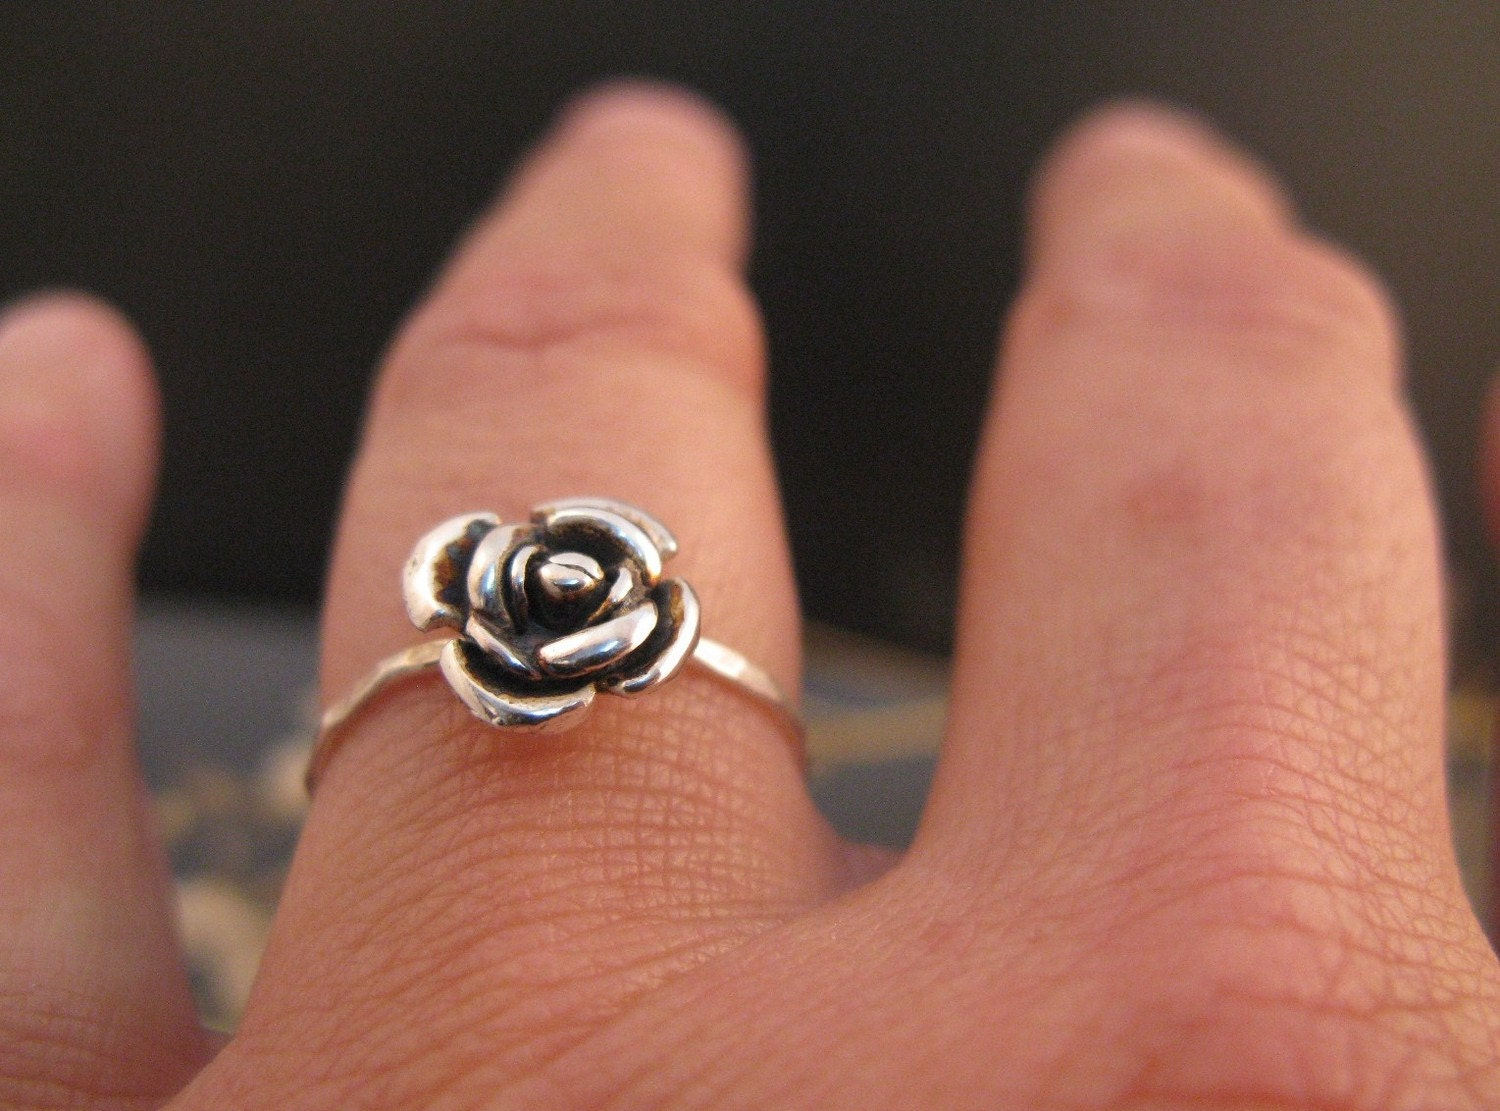 Rose engagement ring, Black rose ring in sterling silver, stackable ring,